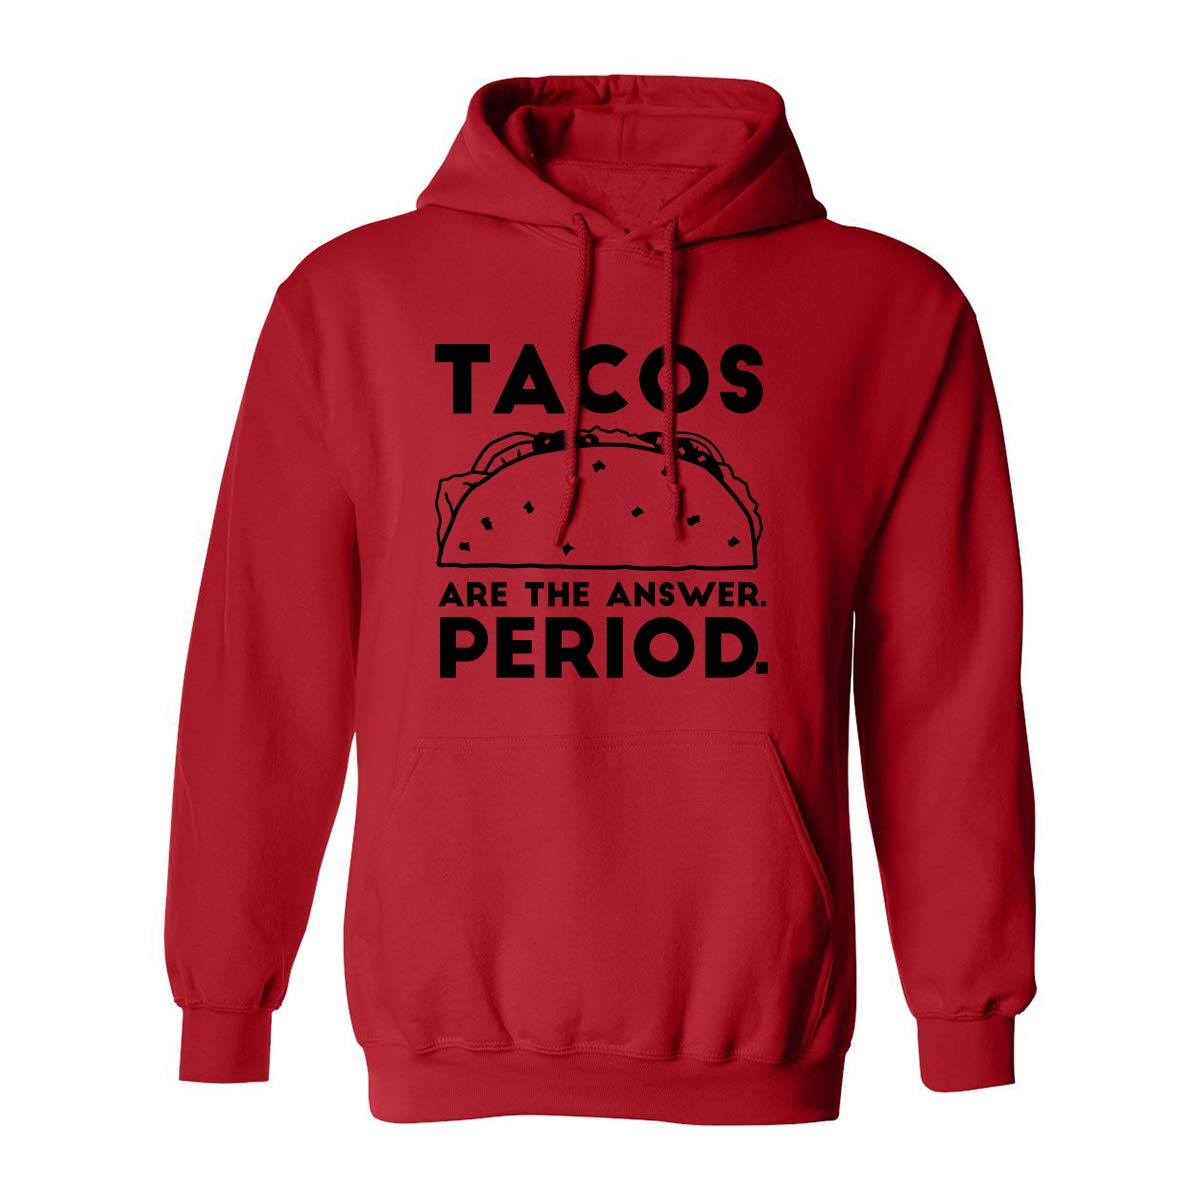 Tacos are The Answer.Period Adult Hooded Sweatshirt